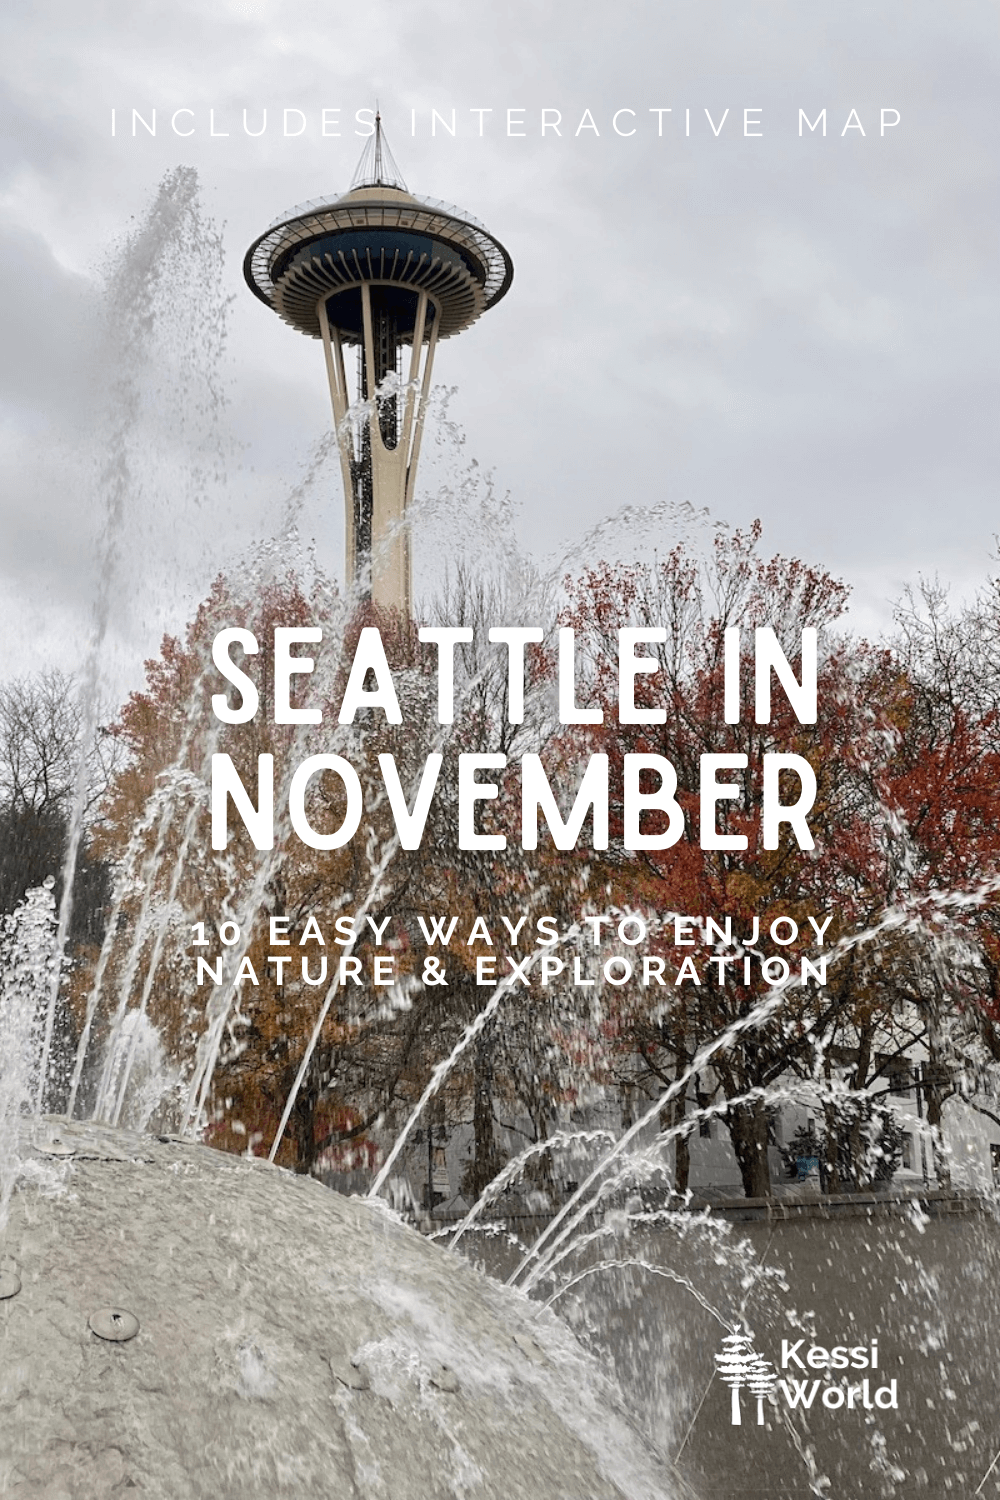 This Pinterest pin shows Seattle in November with the trees around the Seattle Center changing leaves and dropping them with the Space Needle hovering above in cloudy skies. In the foreground is the International Fountain spraying water streams in every direction, with the water bubbling down to the drain, which is red brick color.